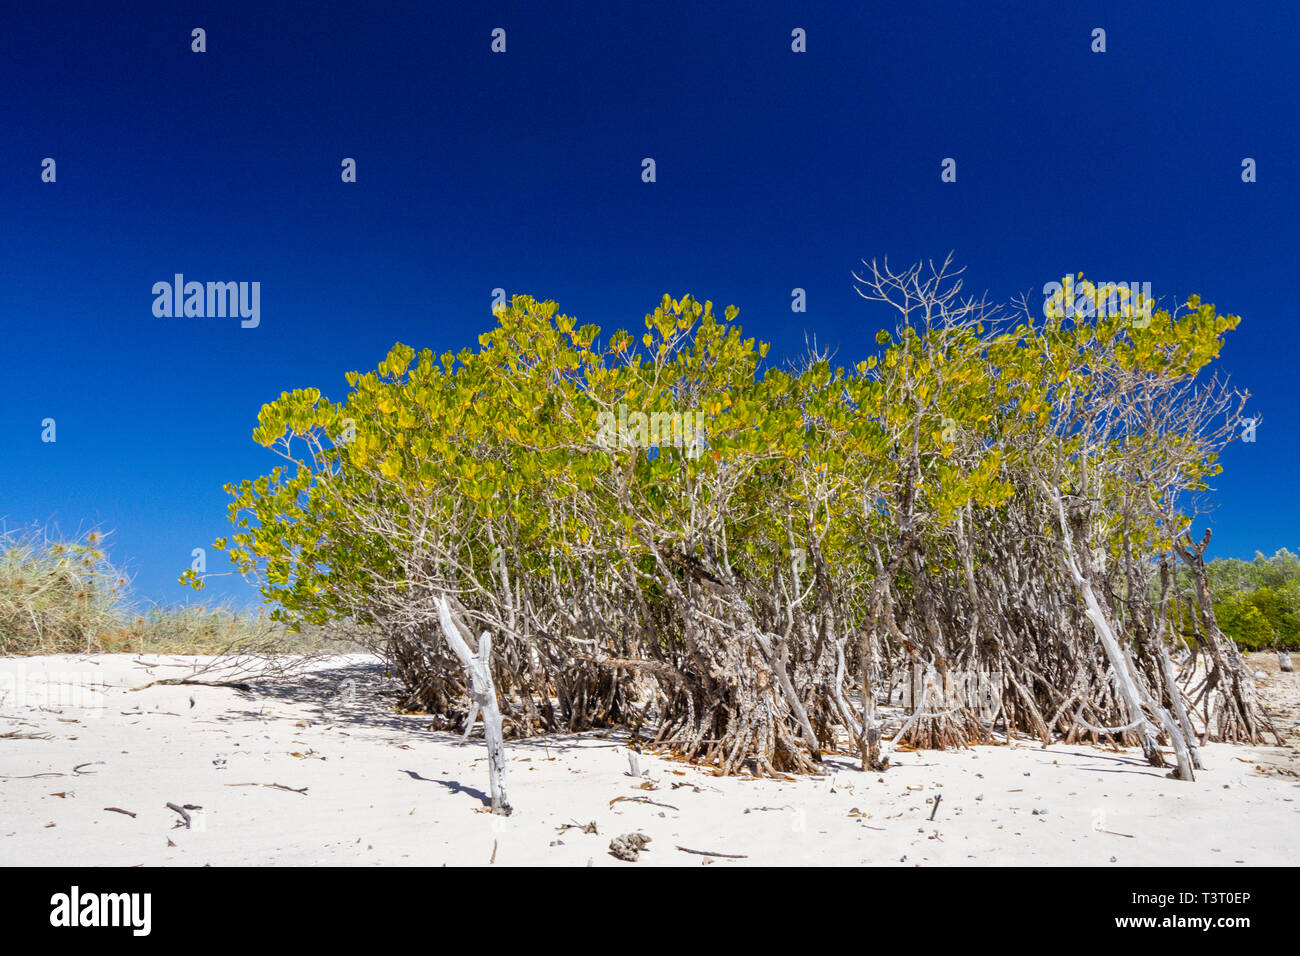 Mangroves growing on sandy beach at upper edge of intertidal zone at Port Smith Western Australia Stock Photo